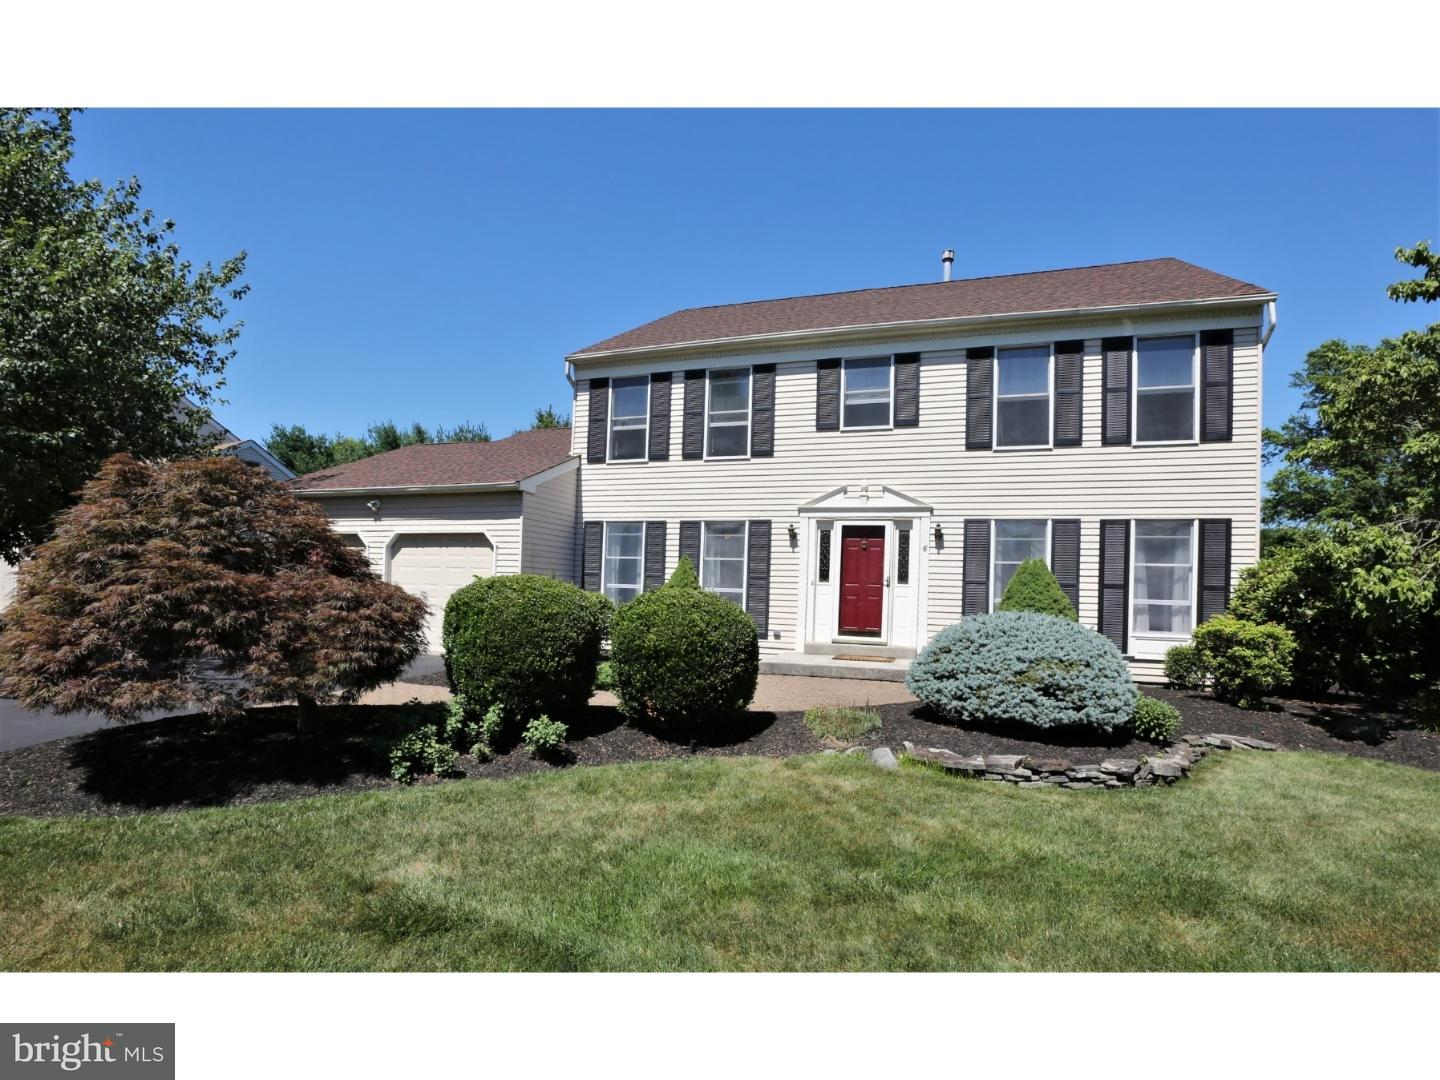 meet kendall park singles This single-family home is located at 11 nancy street, kendall park, nj 11 nancy st is in the brunswick acres neighborhood in kendall park, nj and in zip code 08824 11 nancy st has approximately 2,519 square feet and was built in 1983.